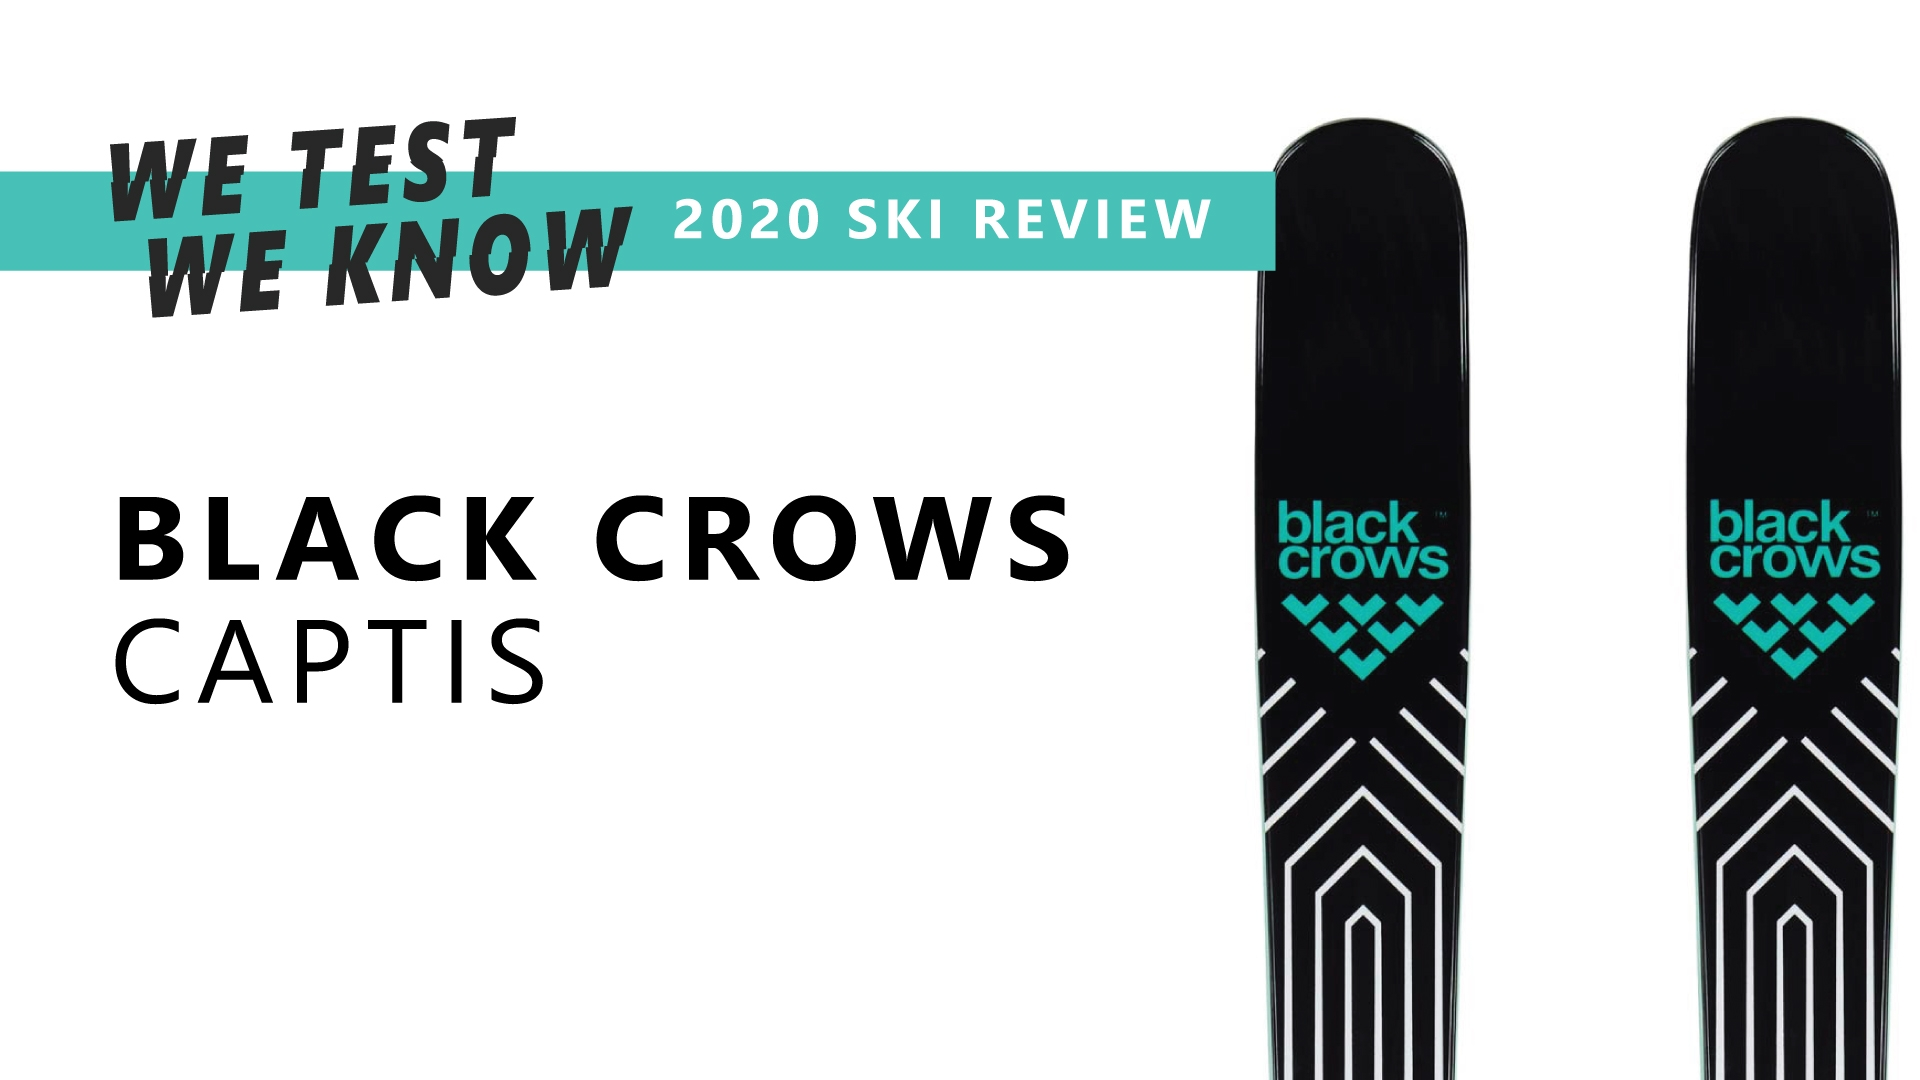 Black Crows Captis - 2020 Ski Review